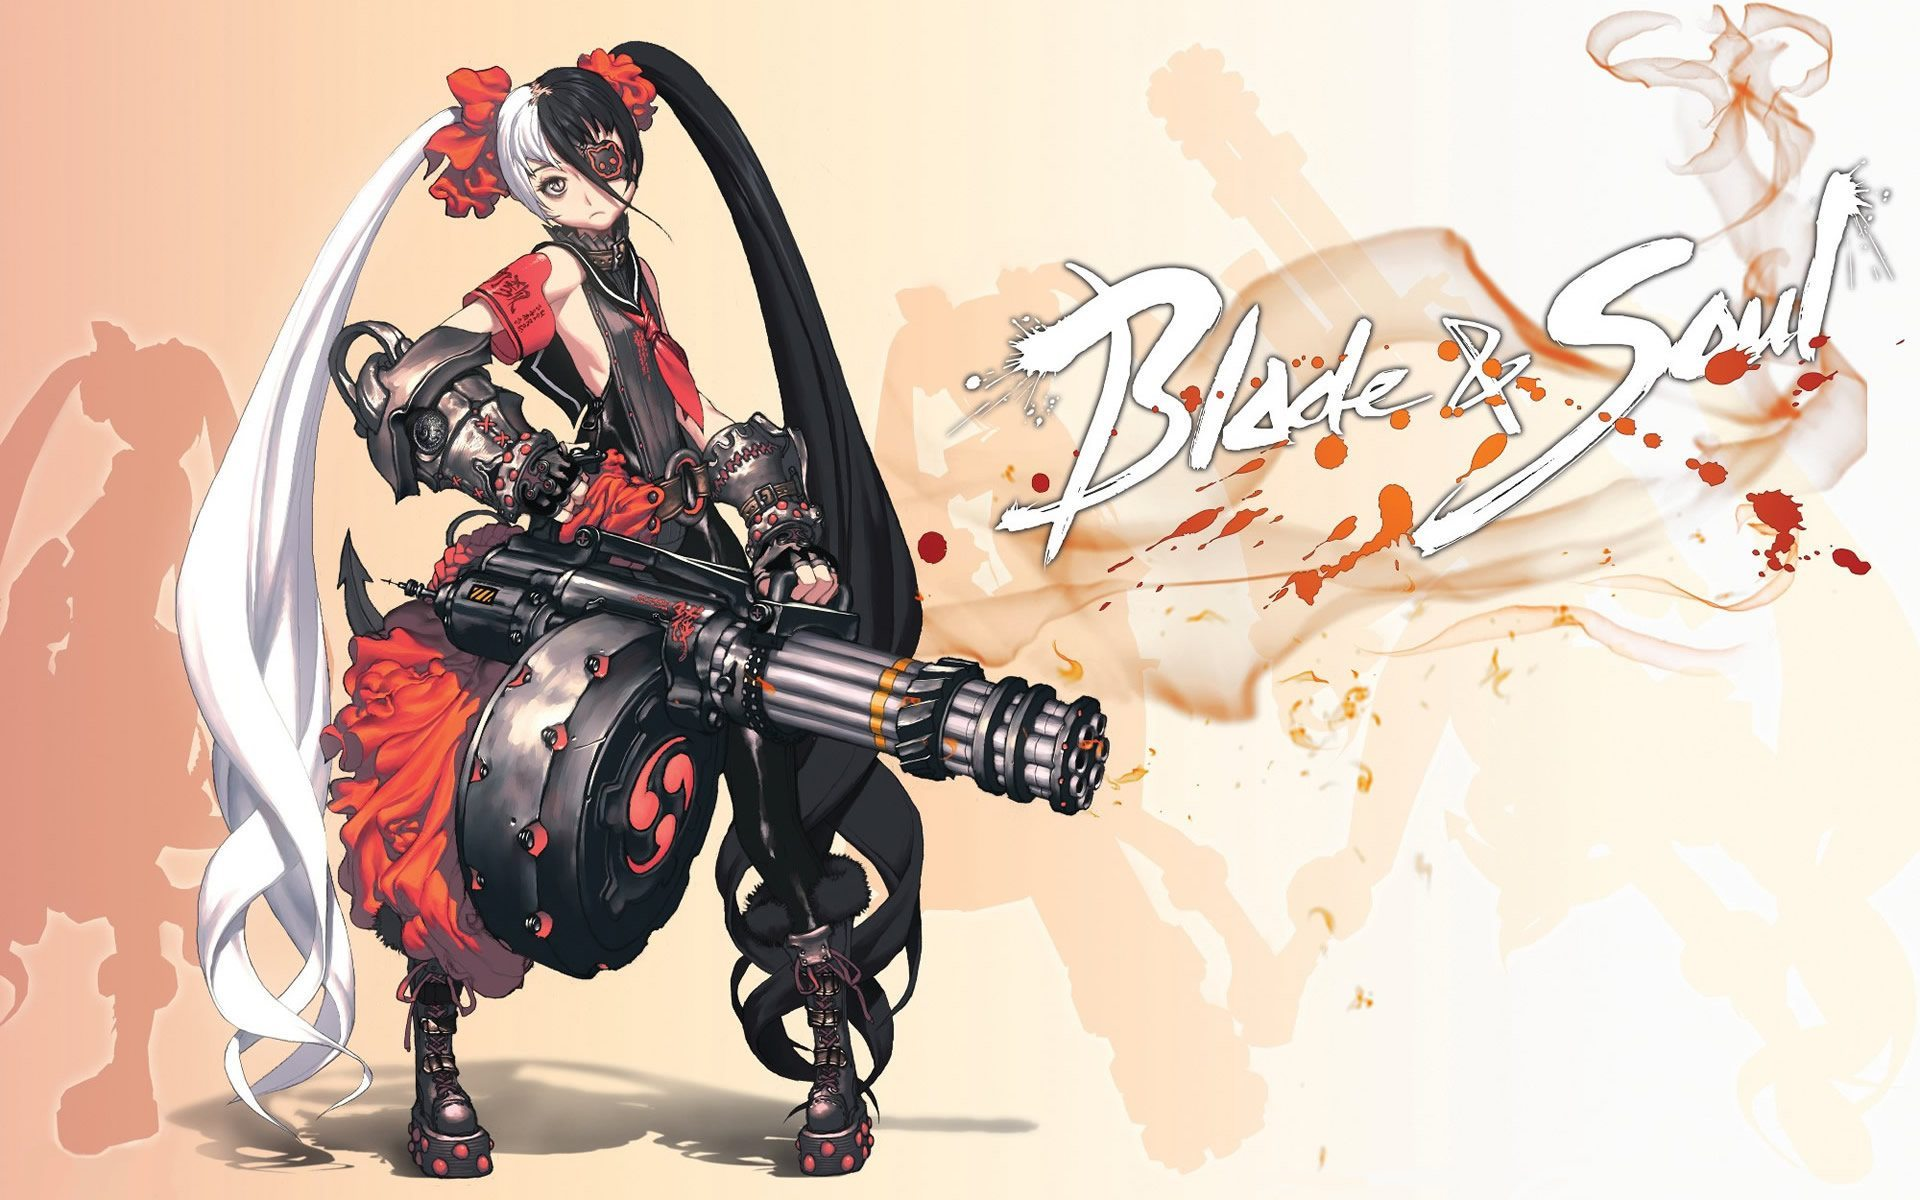 MMORPG Blade and Soul Set to Launch First Quarter of 2016